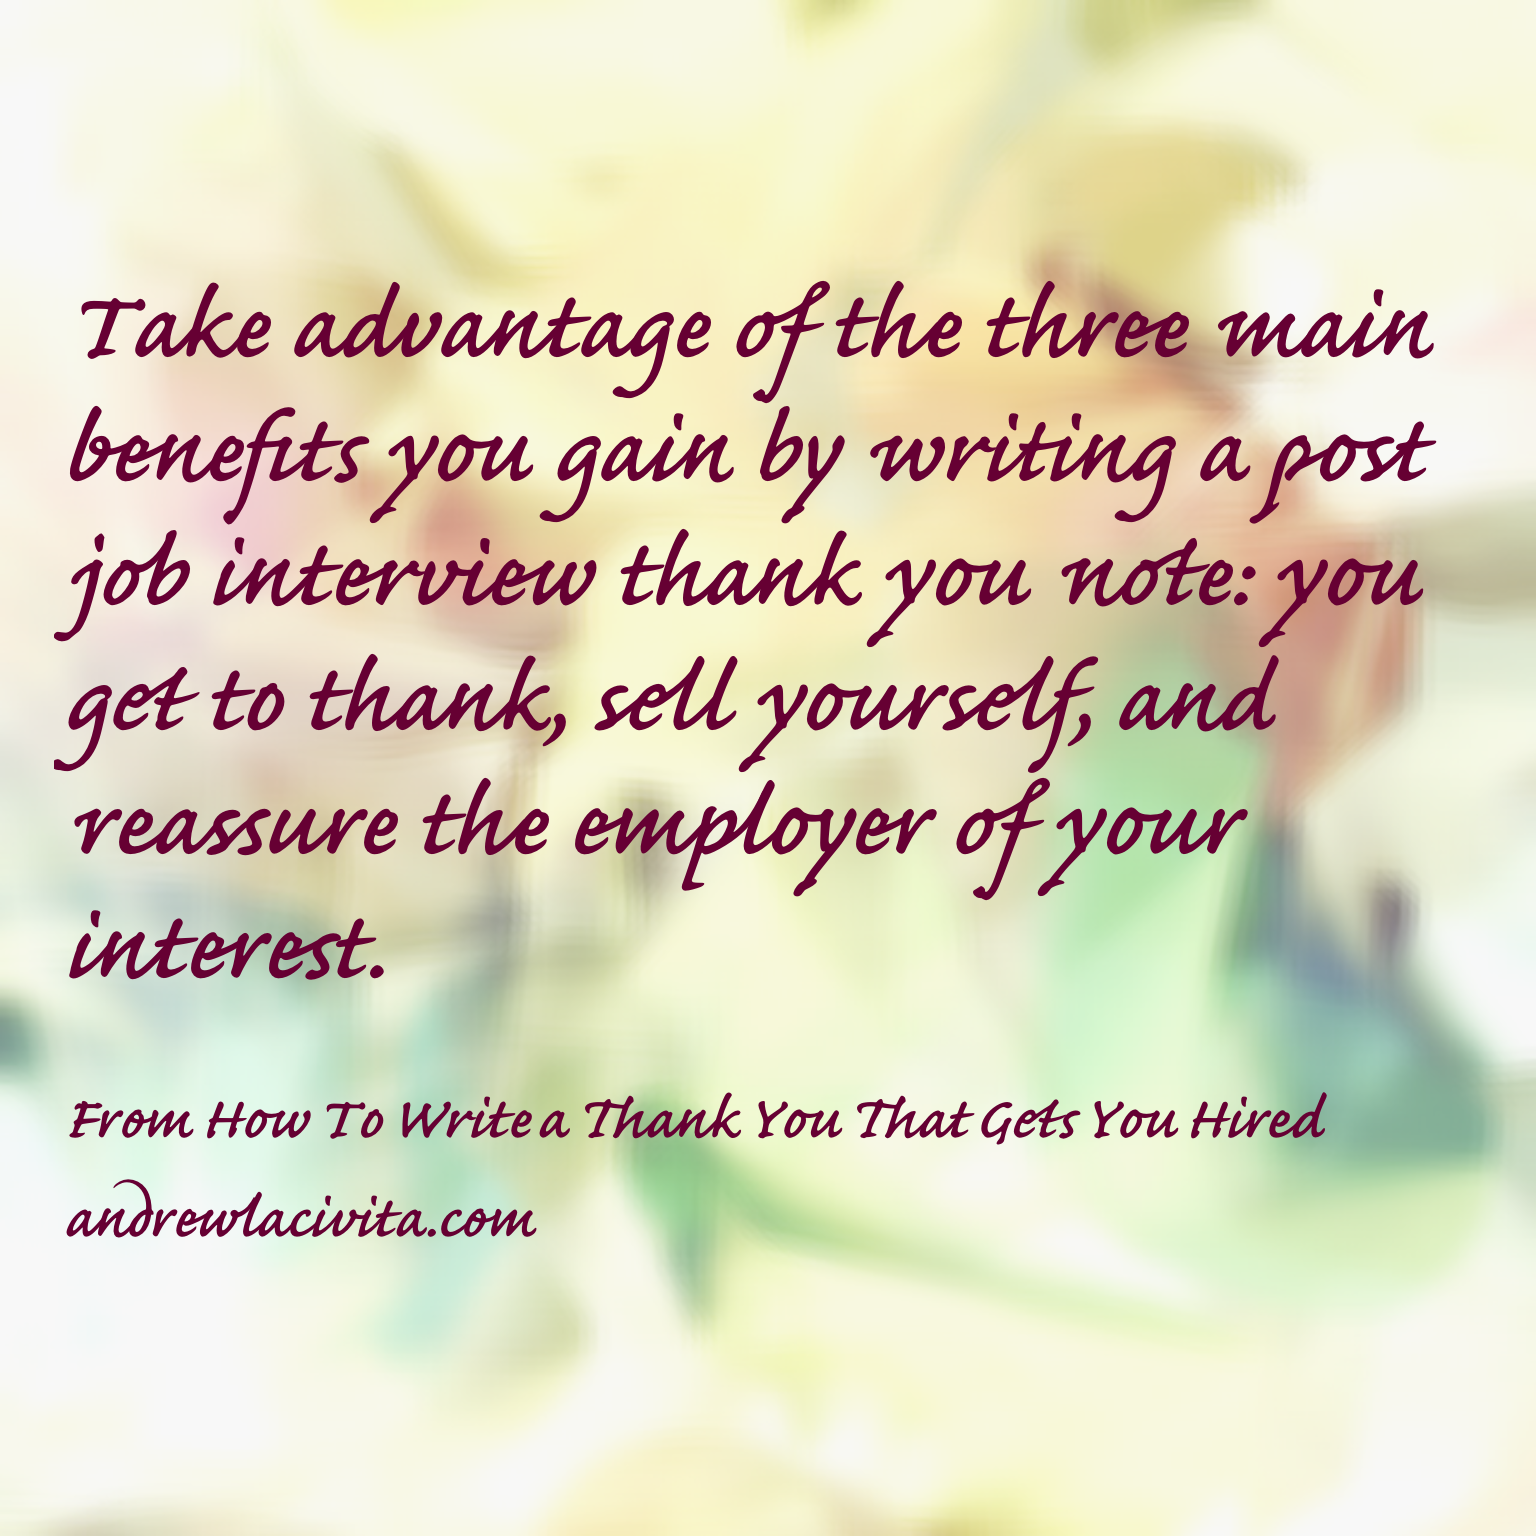 thank you note after getting hired